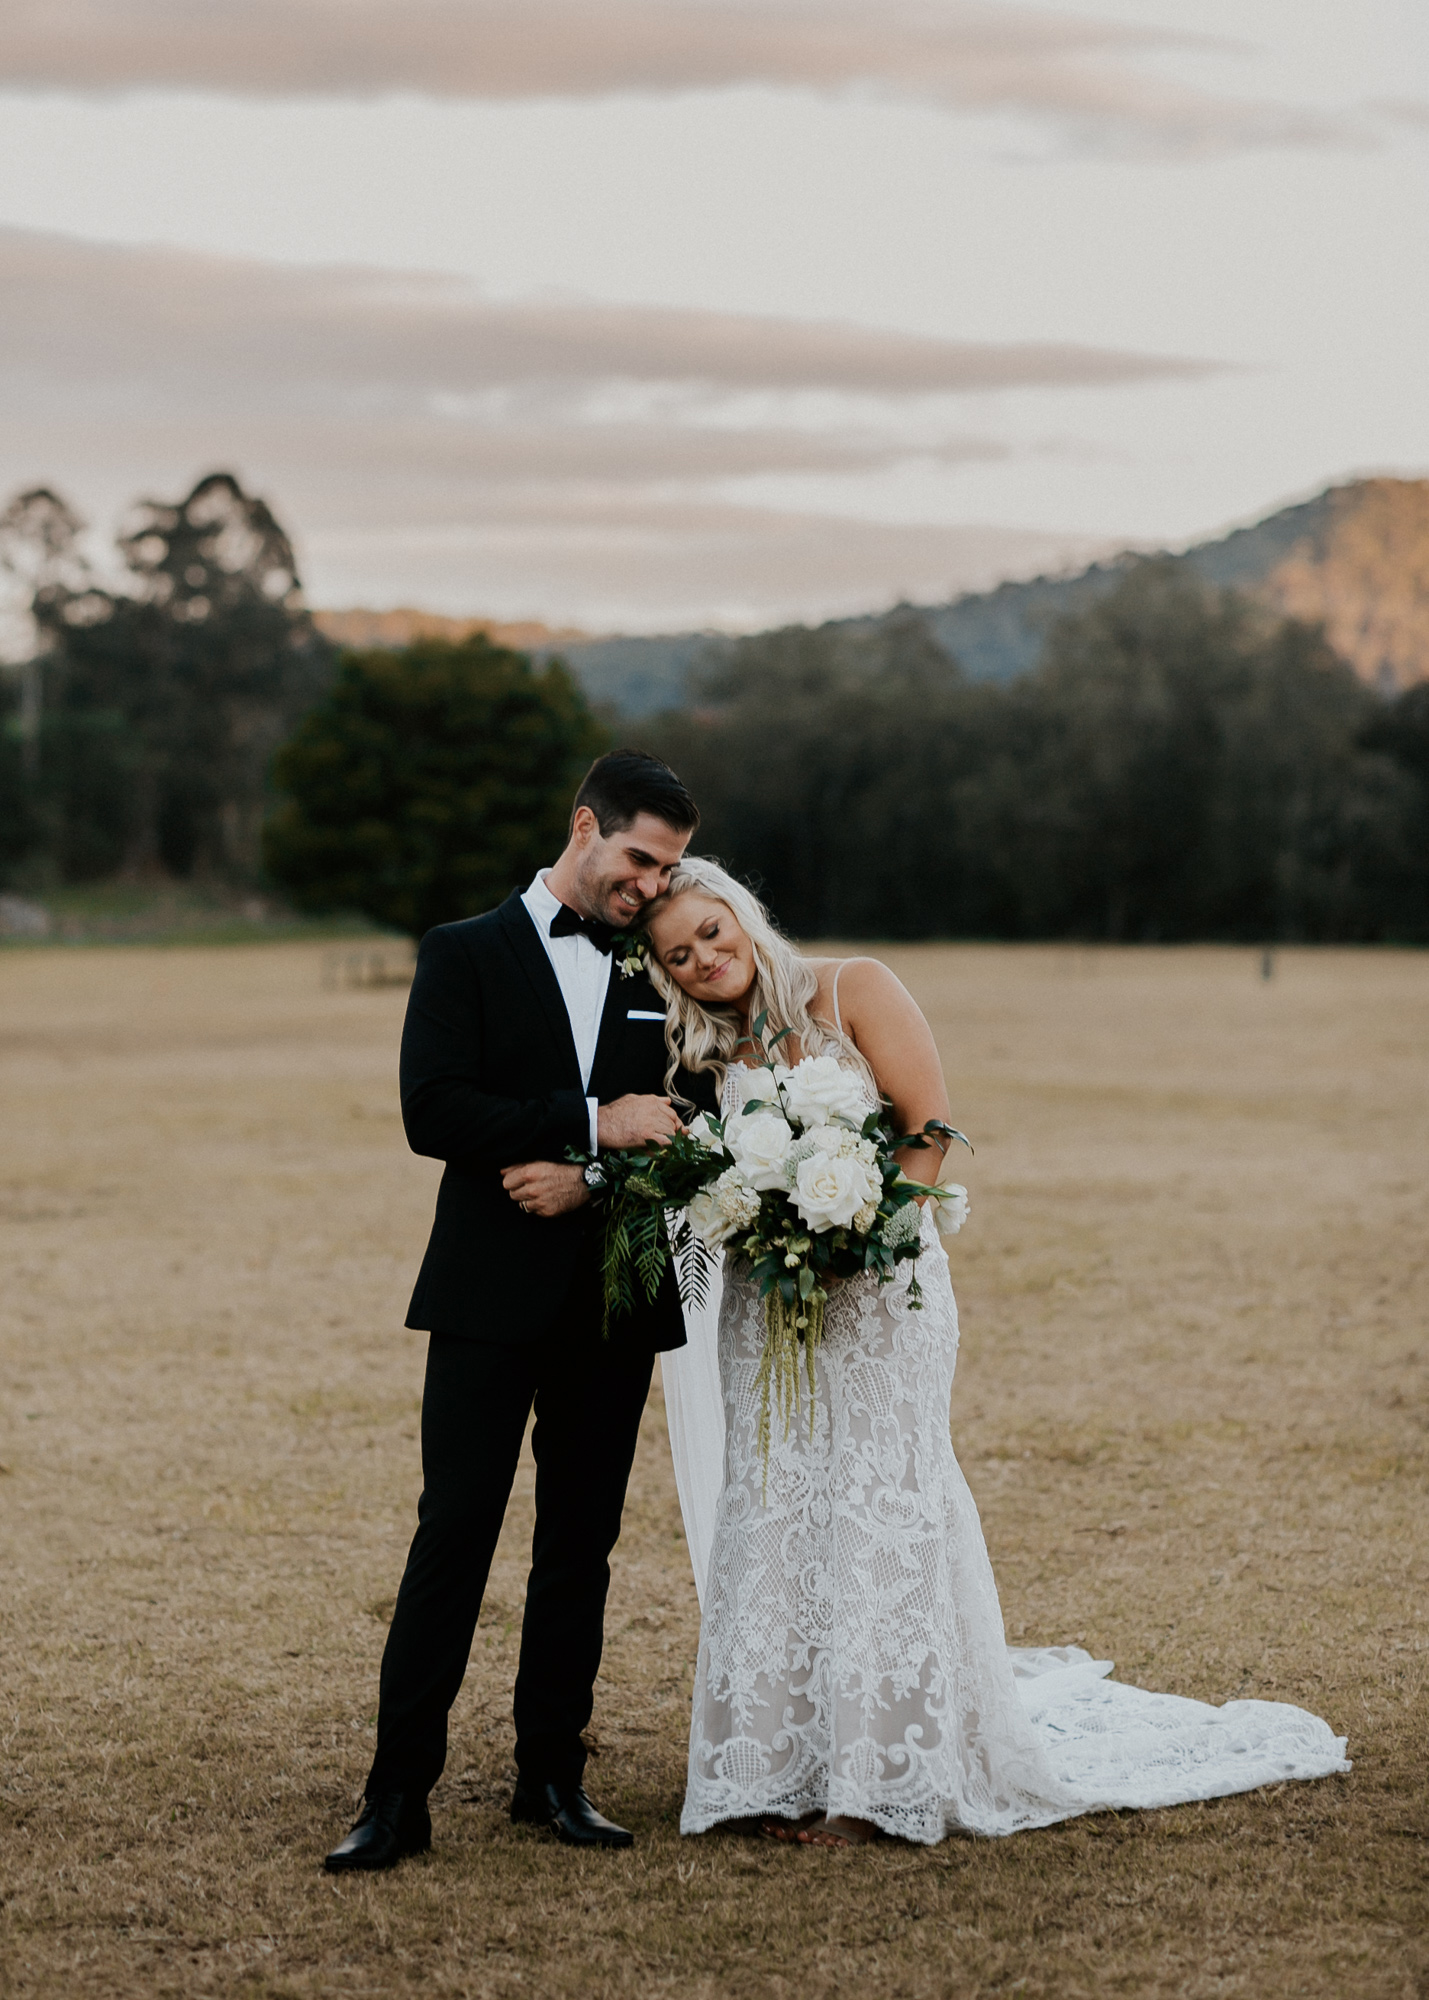 GEORGI + JACK - BIANCA WAS AMAZING, PROFESSIONAL,PUNCTUAL, VERY EXPERIENCED AND SO MUCH FUN FOR OUR BIG DAY. WE WERE BLOWN AWAY WITH OUR PHOTOS FROM NOT ONLY THE WEDDING BUT ALSO ENGAGEMENT SHOOT. SO STOKED TO HAVE THESE MOMENTS FOREVER! HIGHLY RECOMMEND HER, SHE MAKES YOU FEEL SO COMFORTABLE!